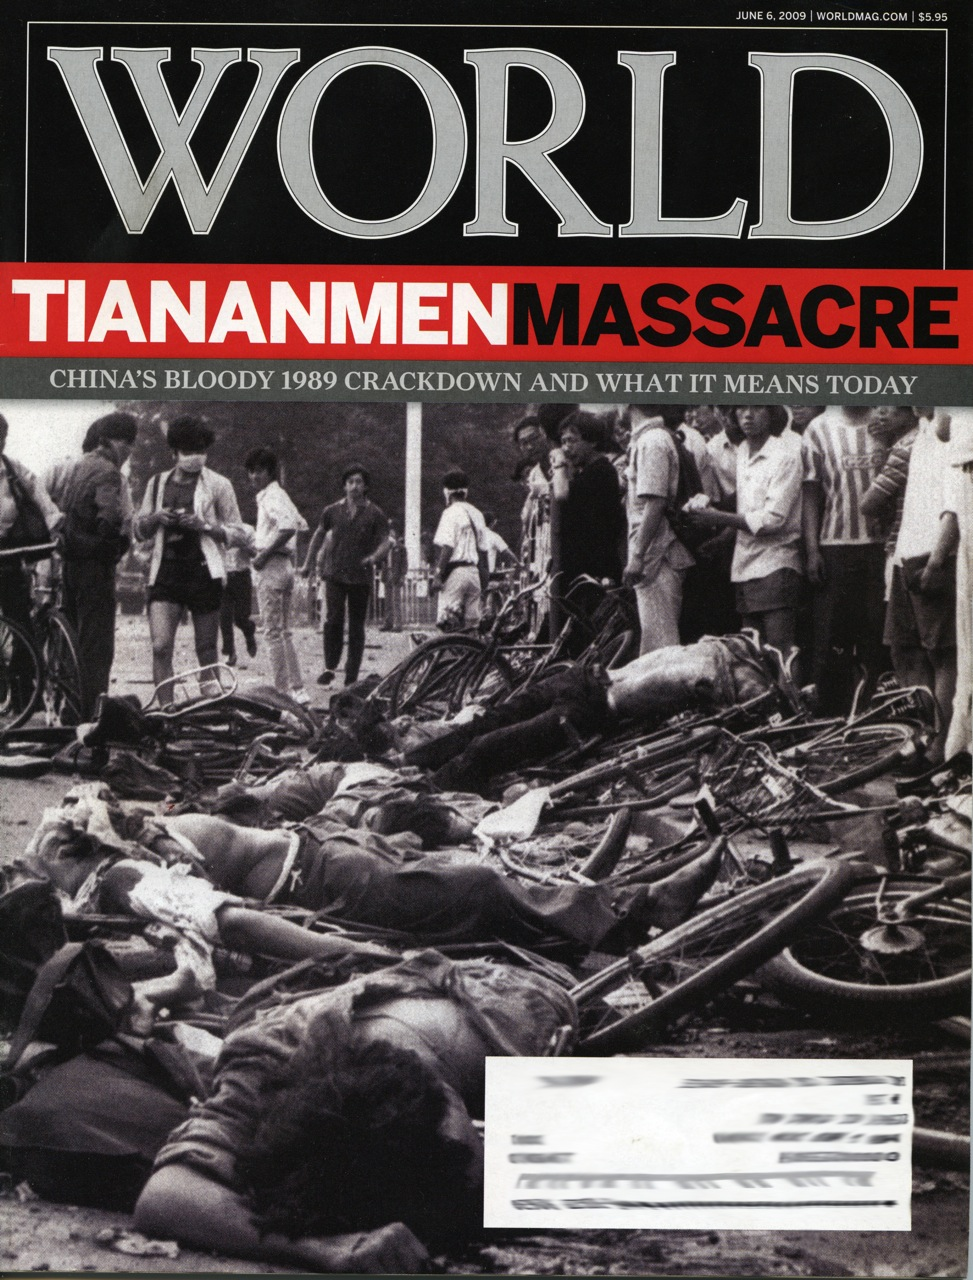 https://i2.wp.com/abortionno.org/wp-content/uploads/2012/06/worldMagTiananmen3.jpg